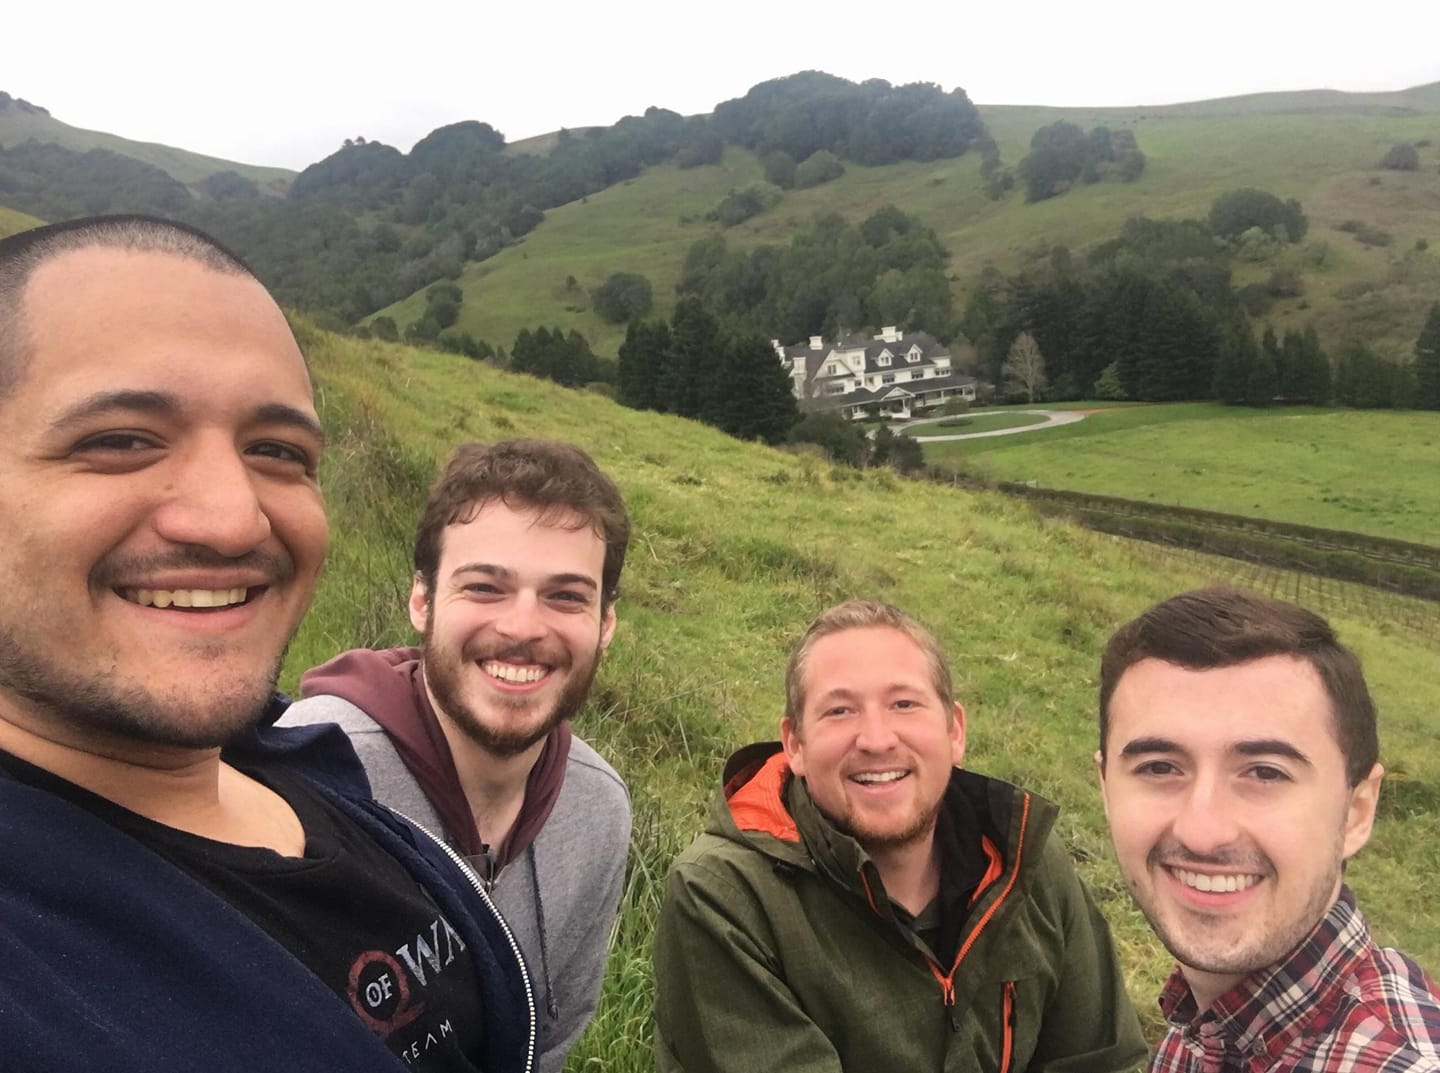 Richard Gould was kind enough to give us a tour of Skywalker Ranch.